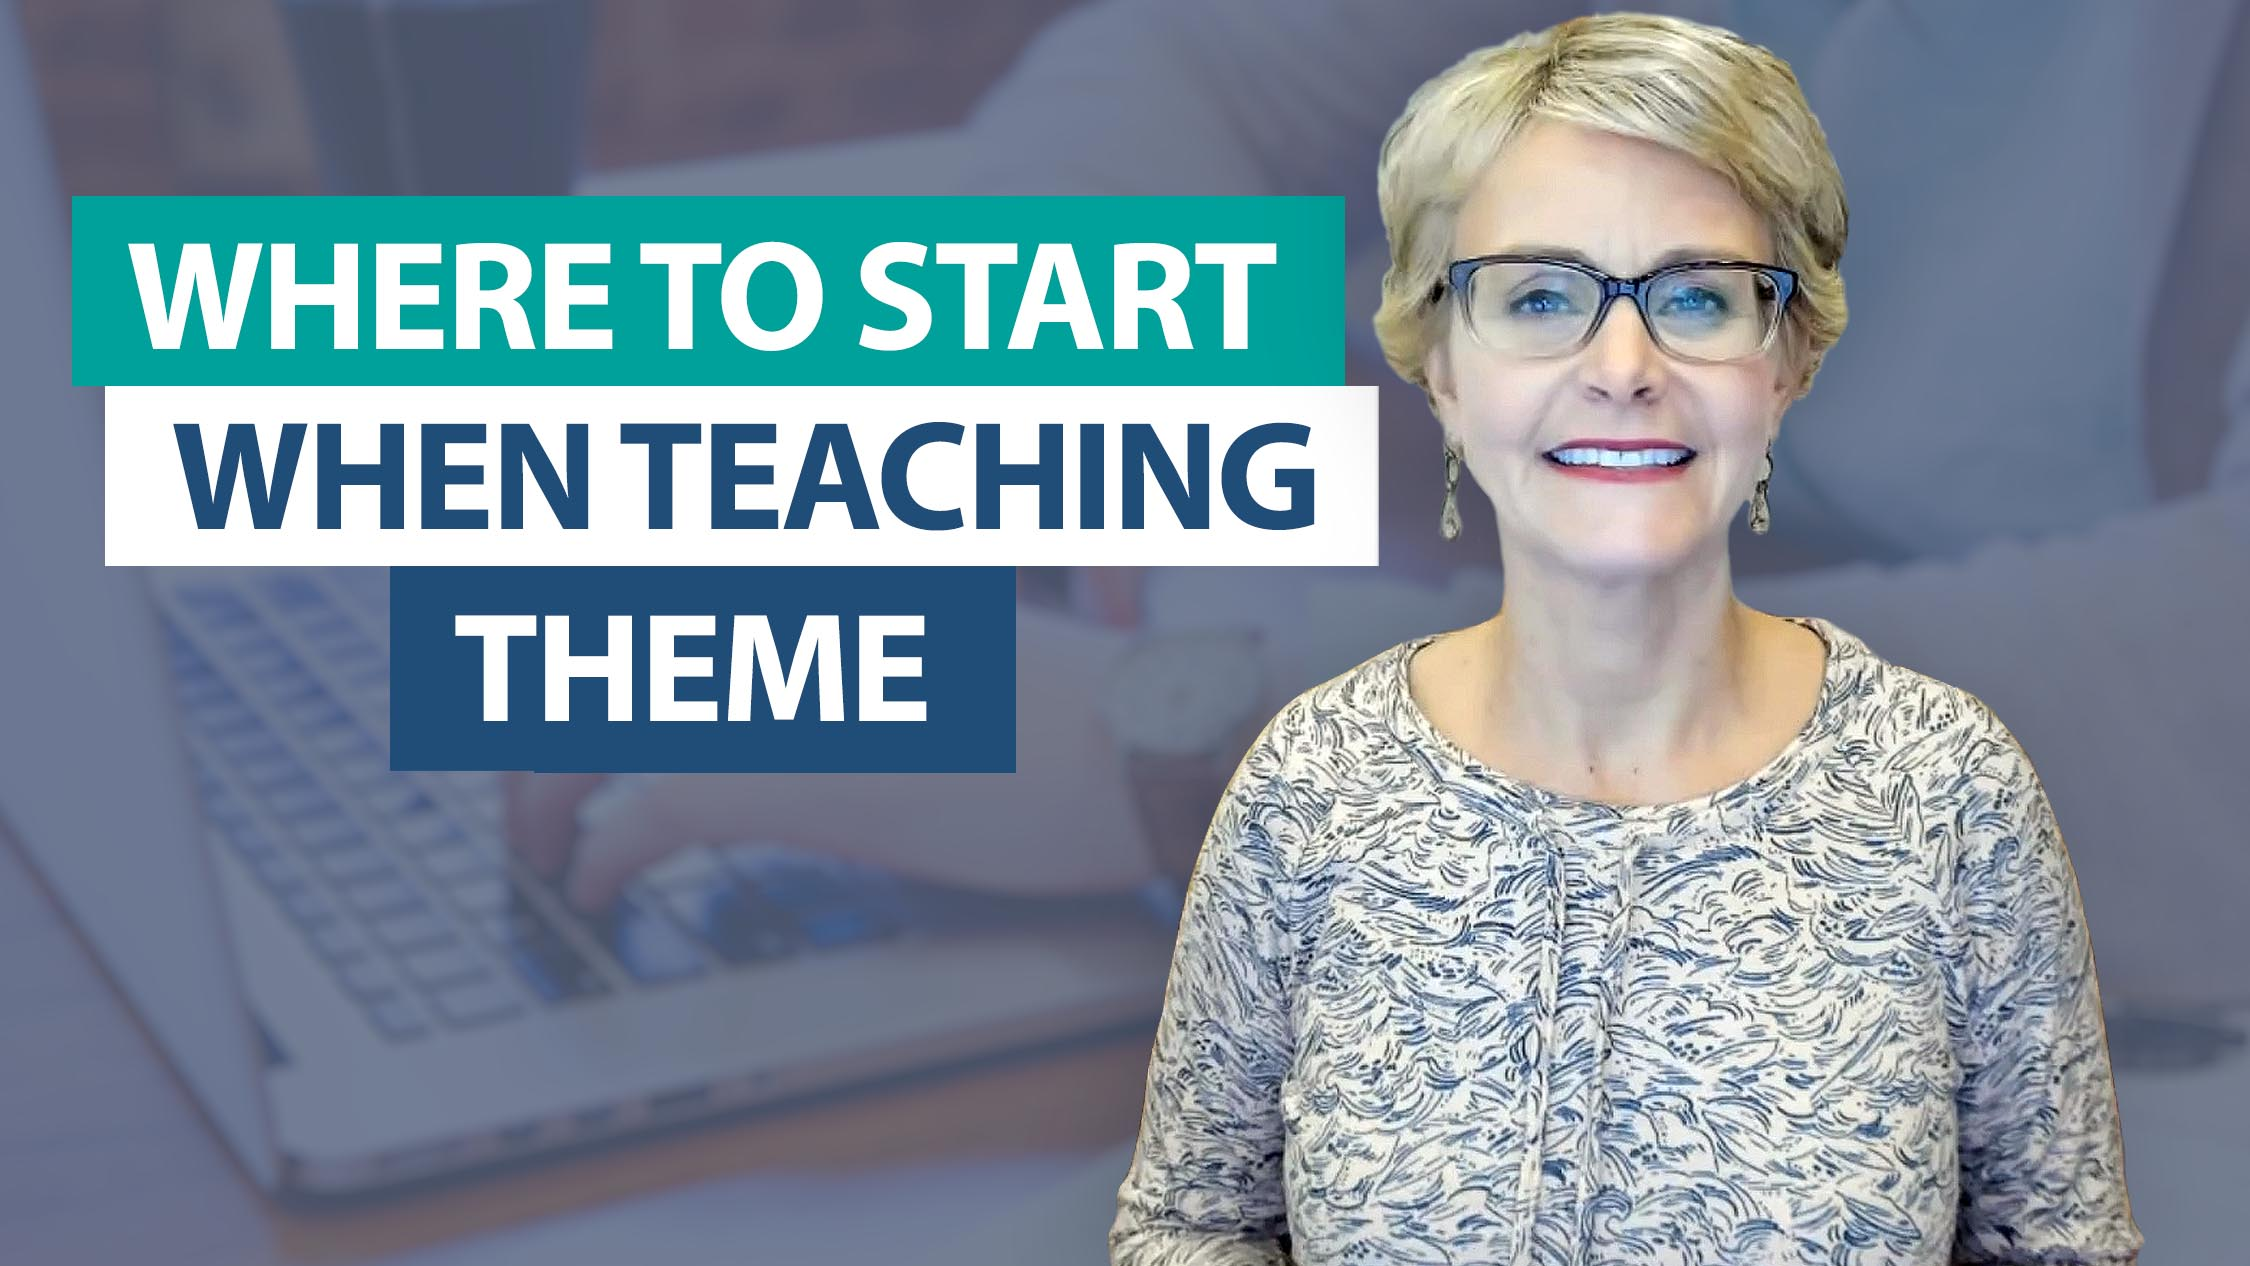 Ask Smekens: Where do I start when teaching theme?